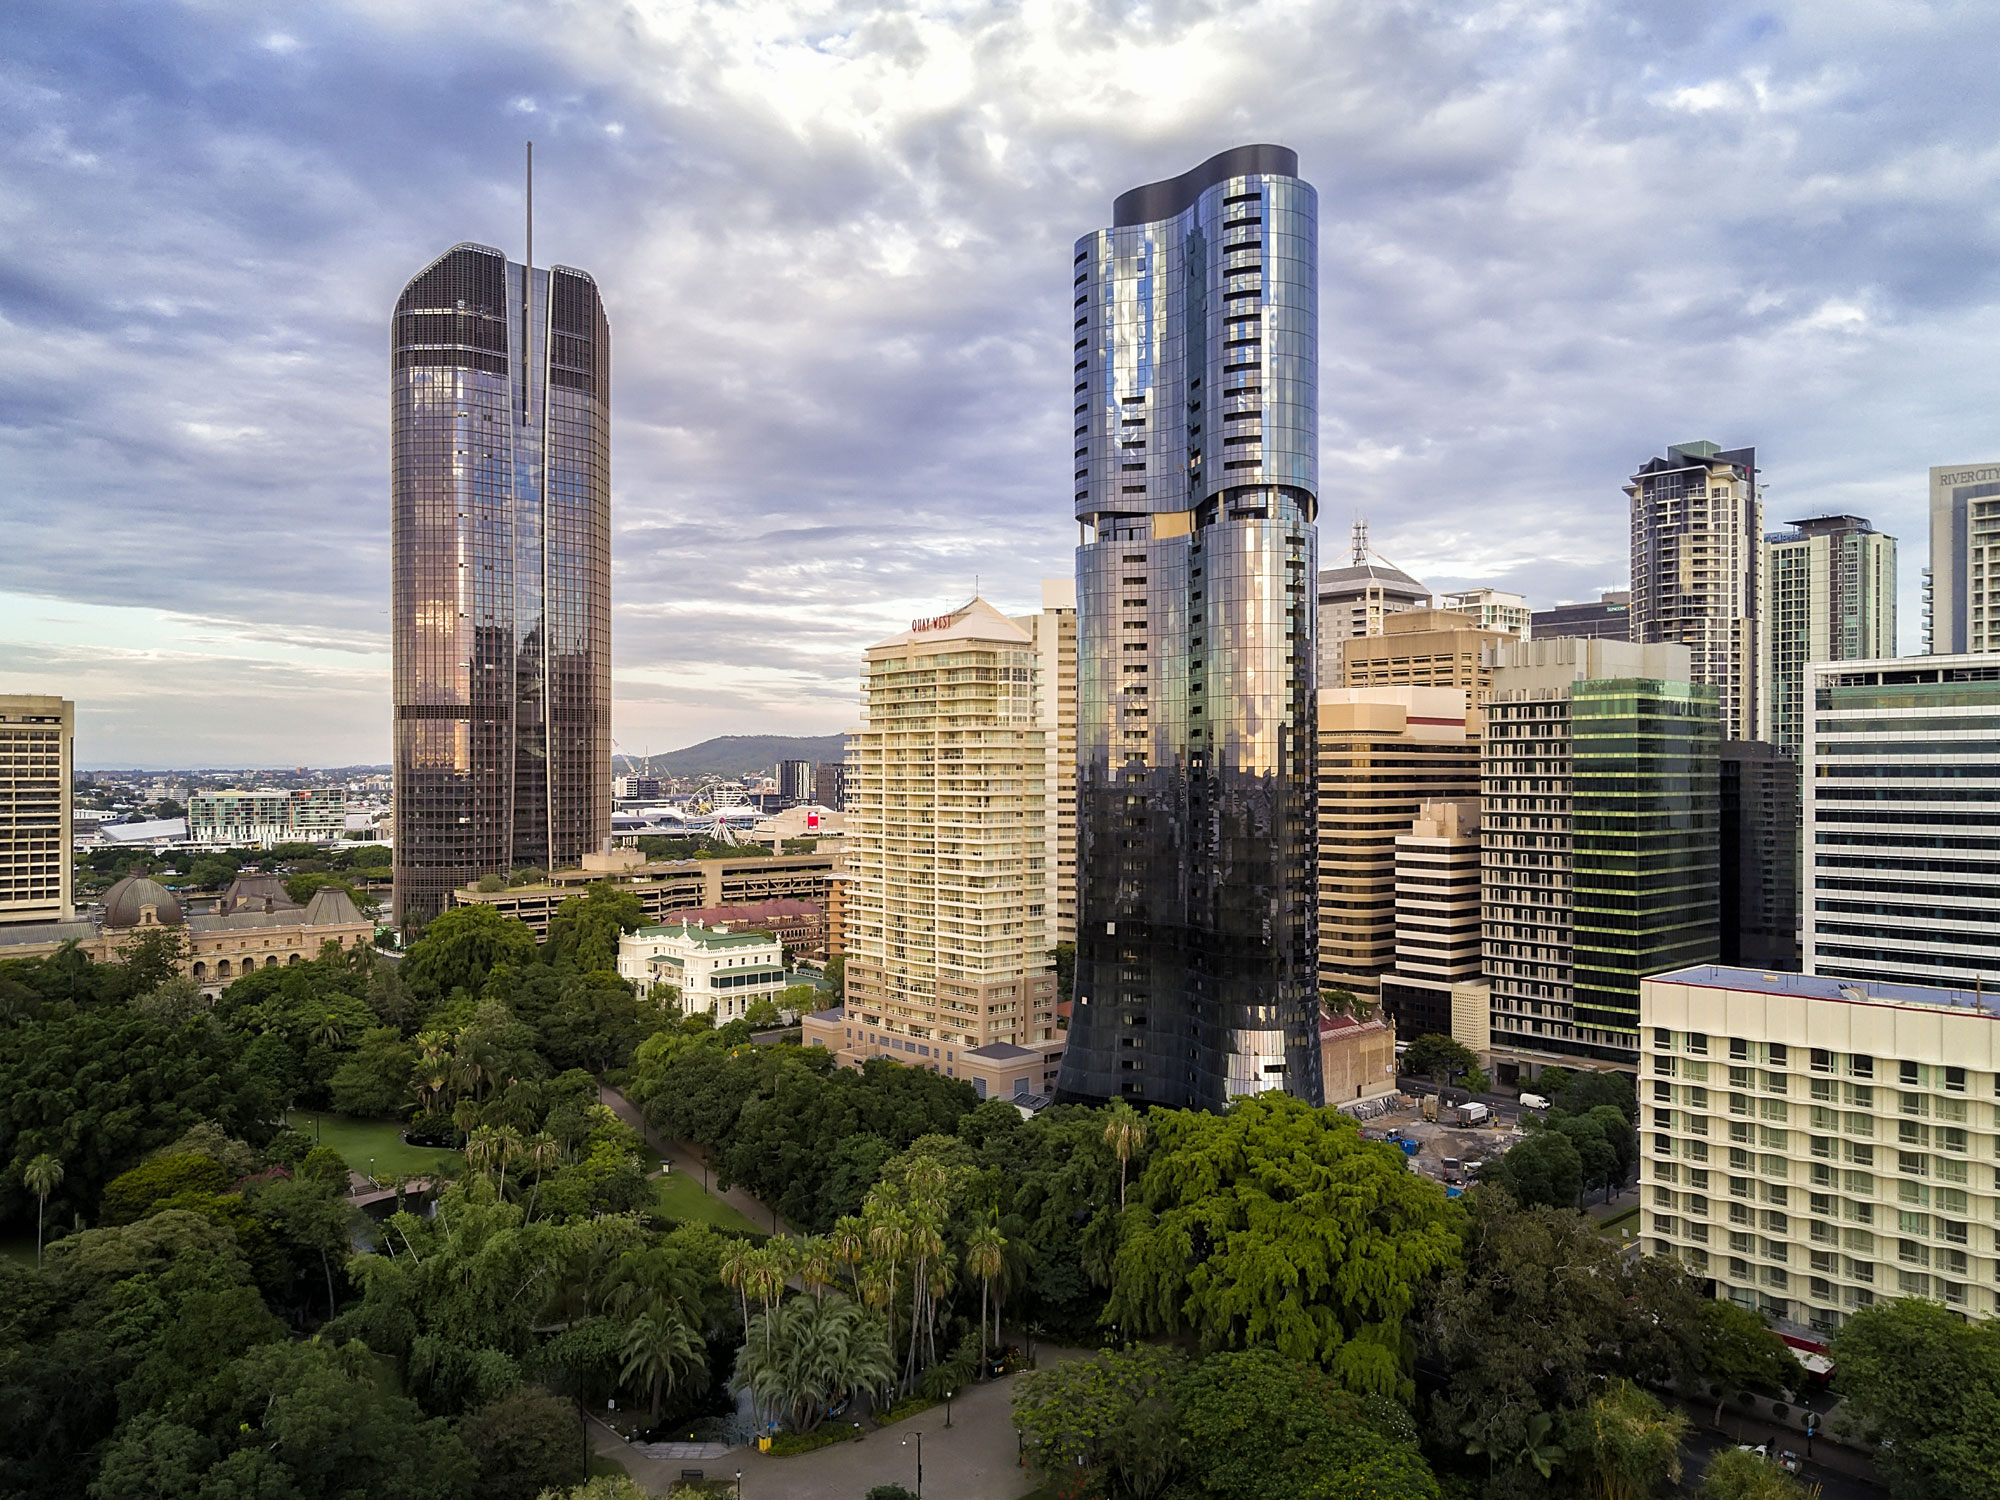 Drone photograph of Abian Apartments by phil savory